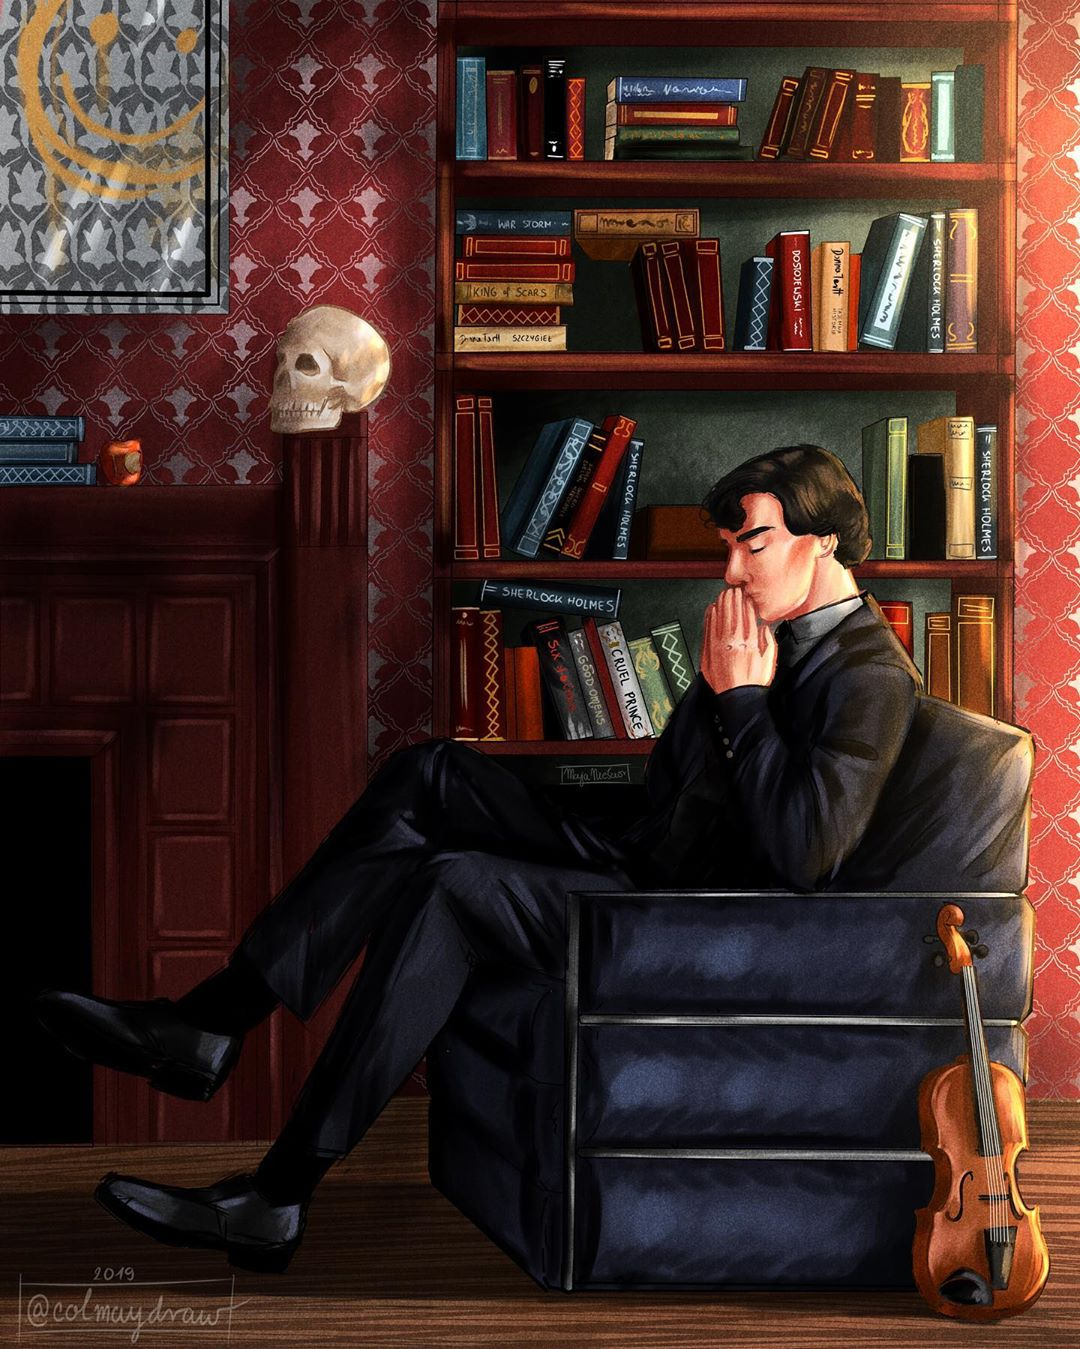 High functioning sociopath from 221B Baker Street, obviously. I keep making a rewatch of…